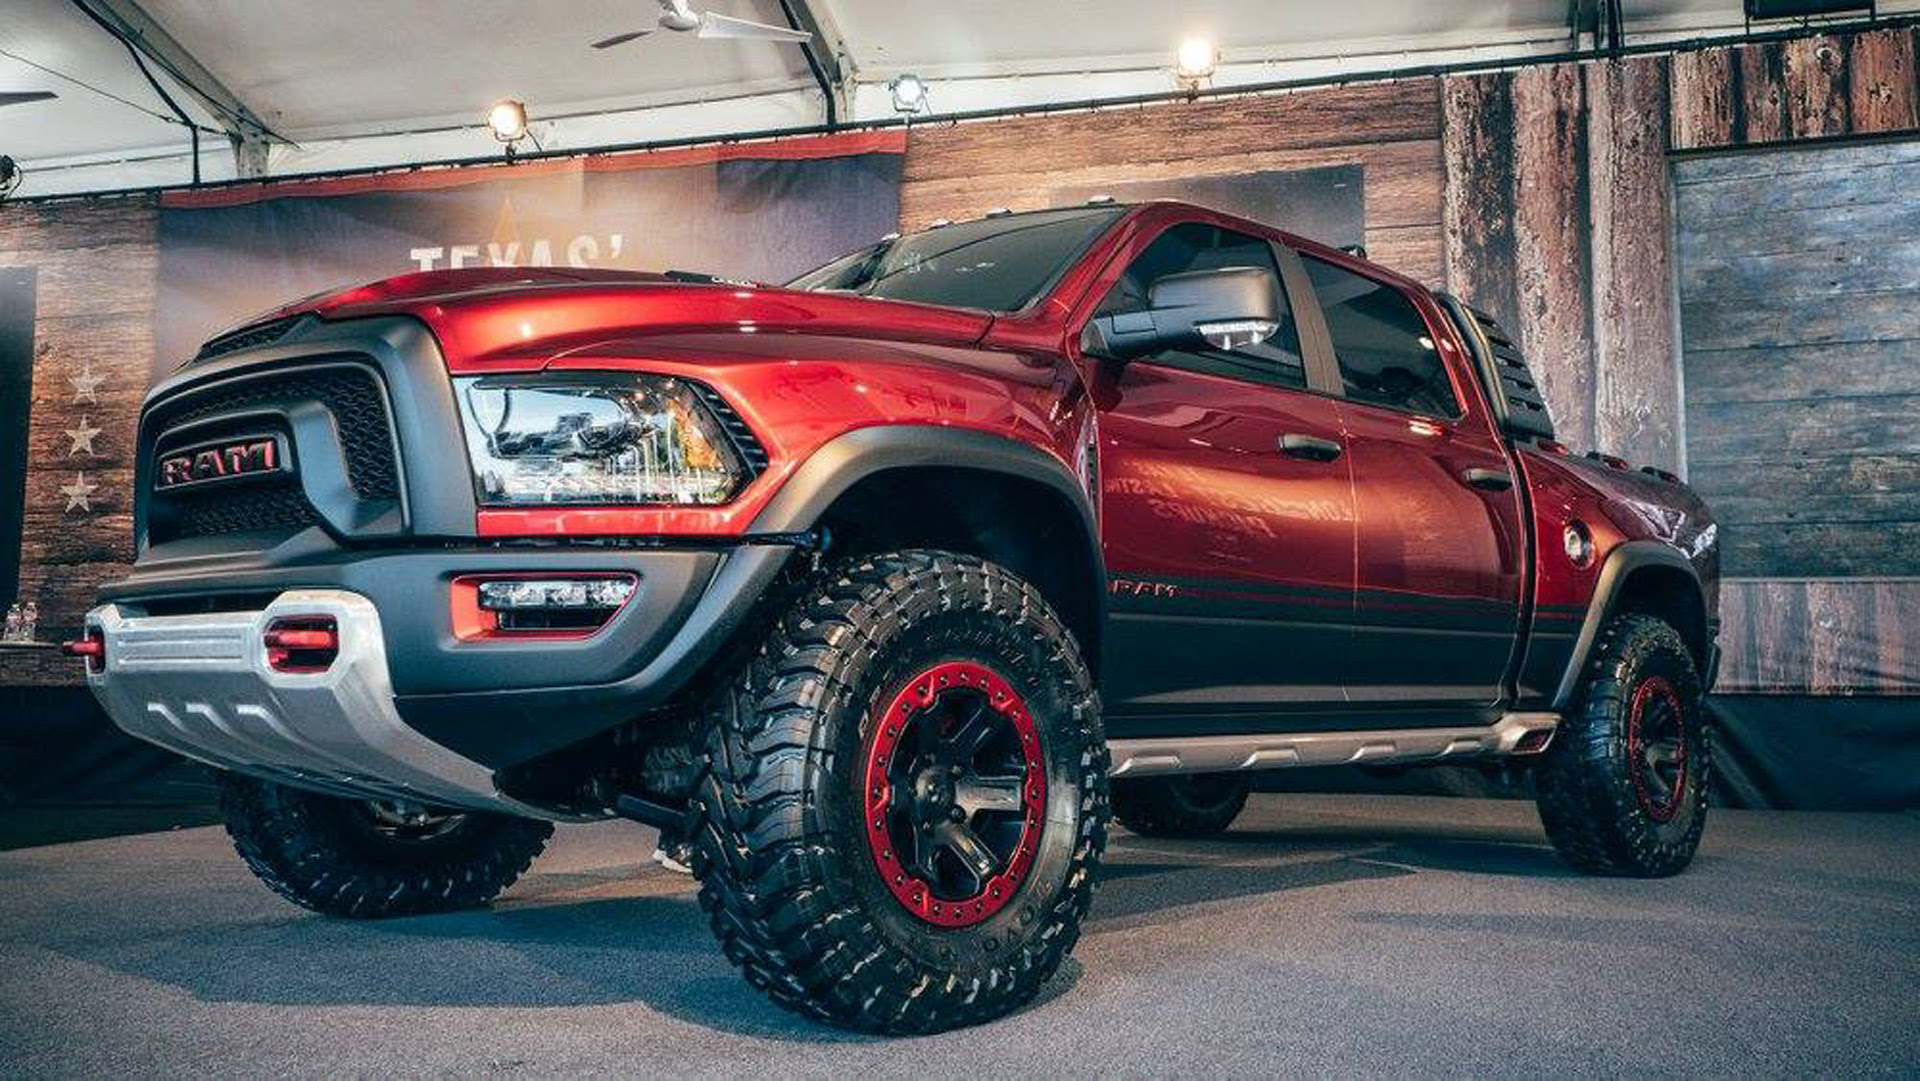 Ram unloads new details, video for Hellcat-powered Rebel TRX